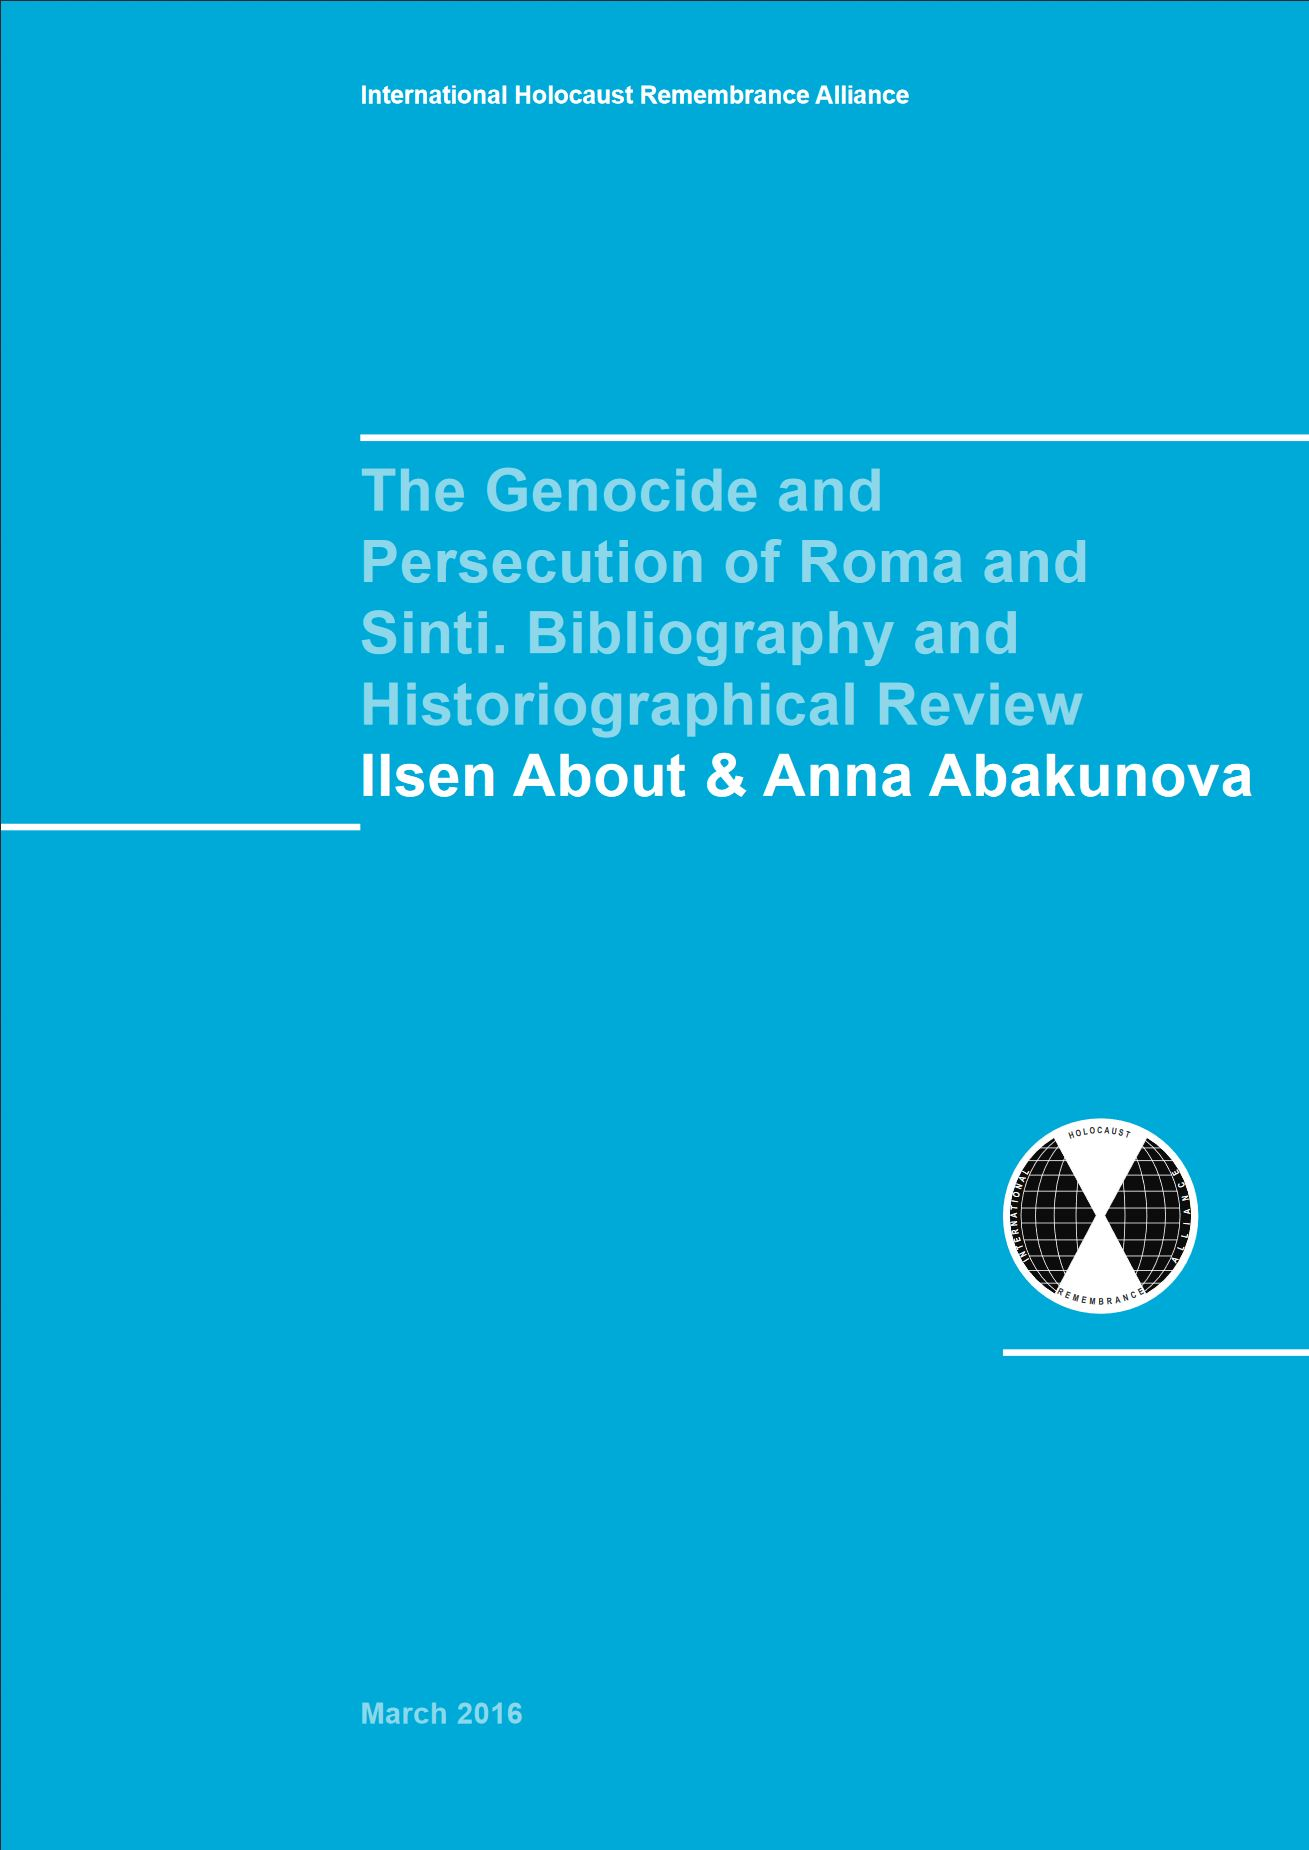 IHRA - Bibliography and Historiographical Review